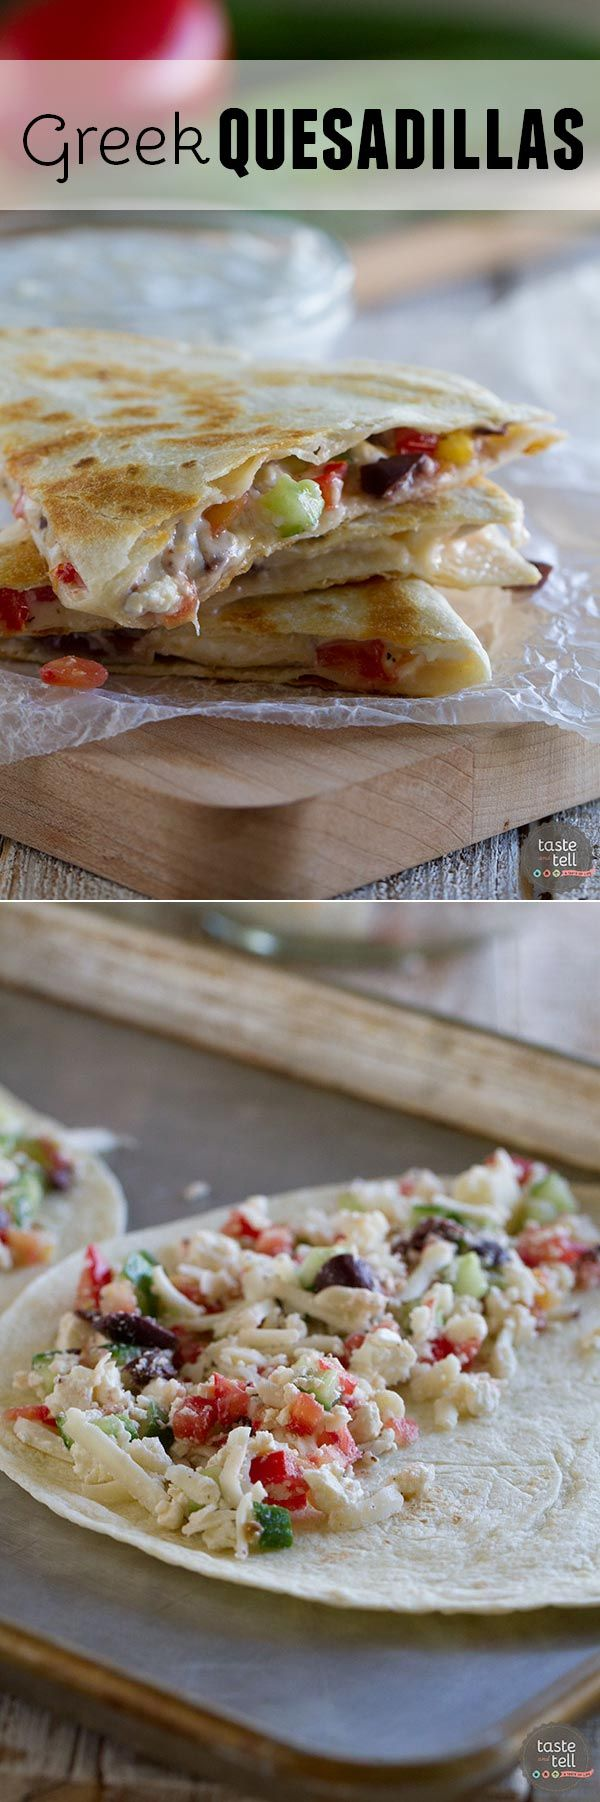 All of your favorite Greek flavors in a cheesy tortilla! These Greek Quesadillas are great for lunch or an easy vegetarian dinner.: